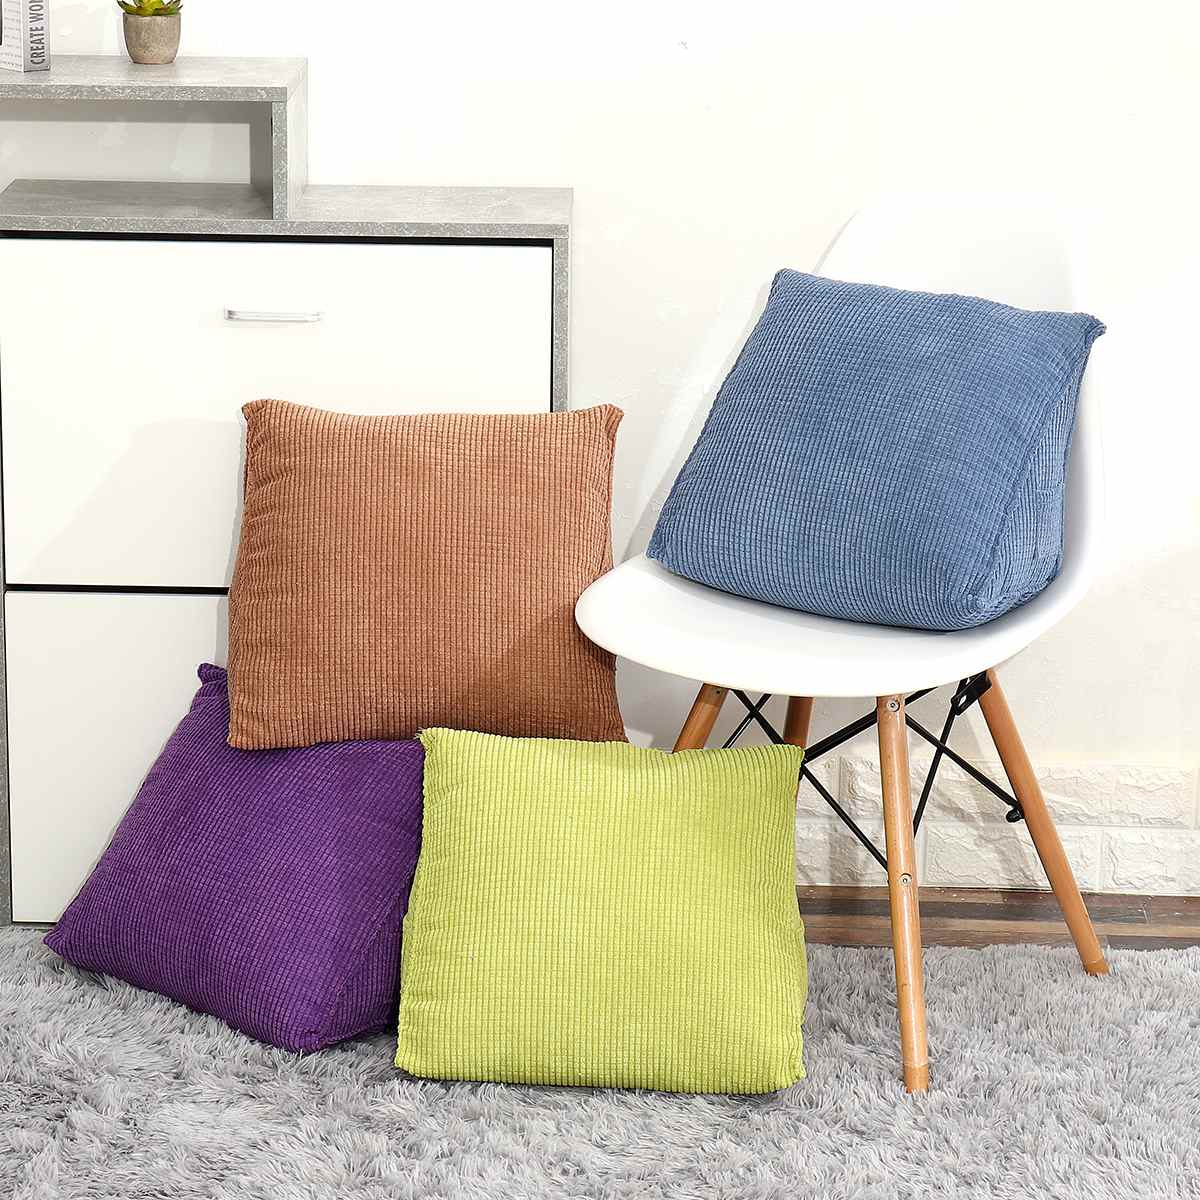 Picture of: Adeeing Reading Backrest Cushion Wedge Pillow Back Cushion Lumbar Pad Bed Office Chair Rest Pillow Back Support Outdoor Cushion Covers Online Wicker Patio Furniture Cushions Replacement From Tinaya 21 91 Dhgate Com